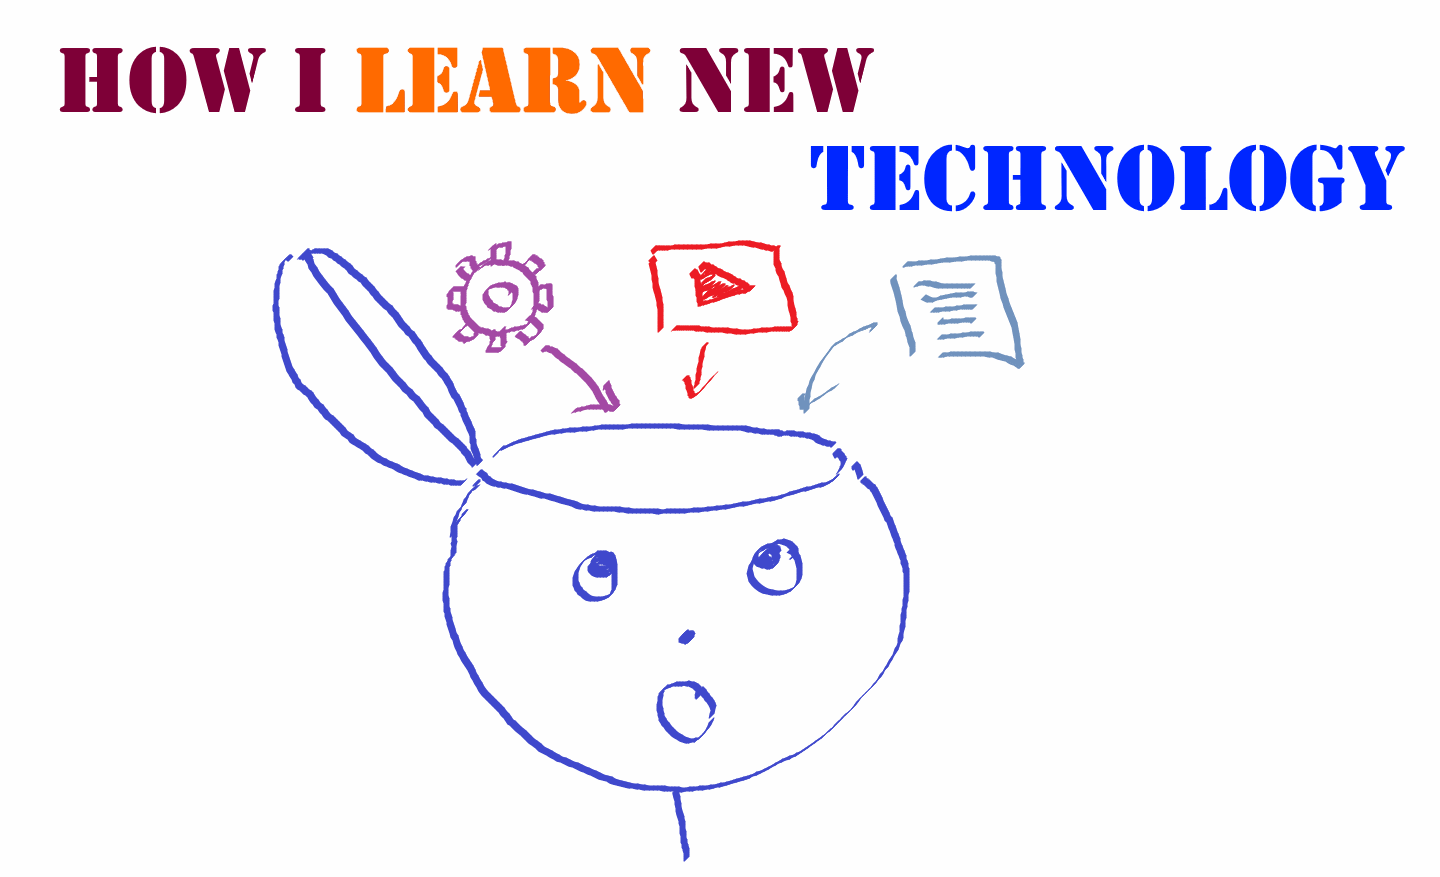 How I learn new technology